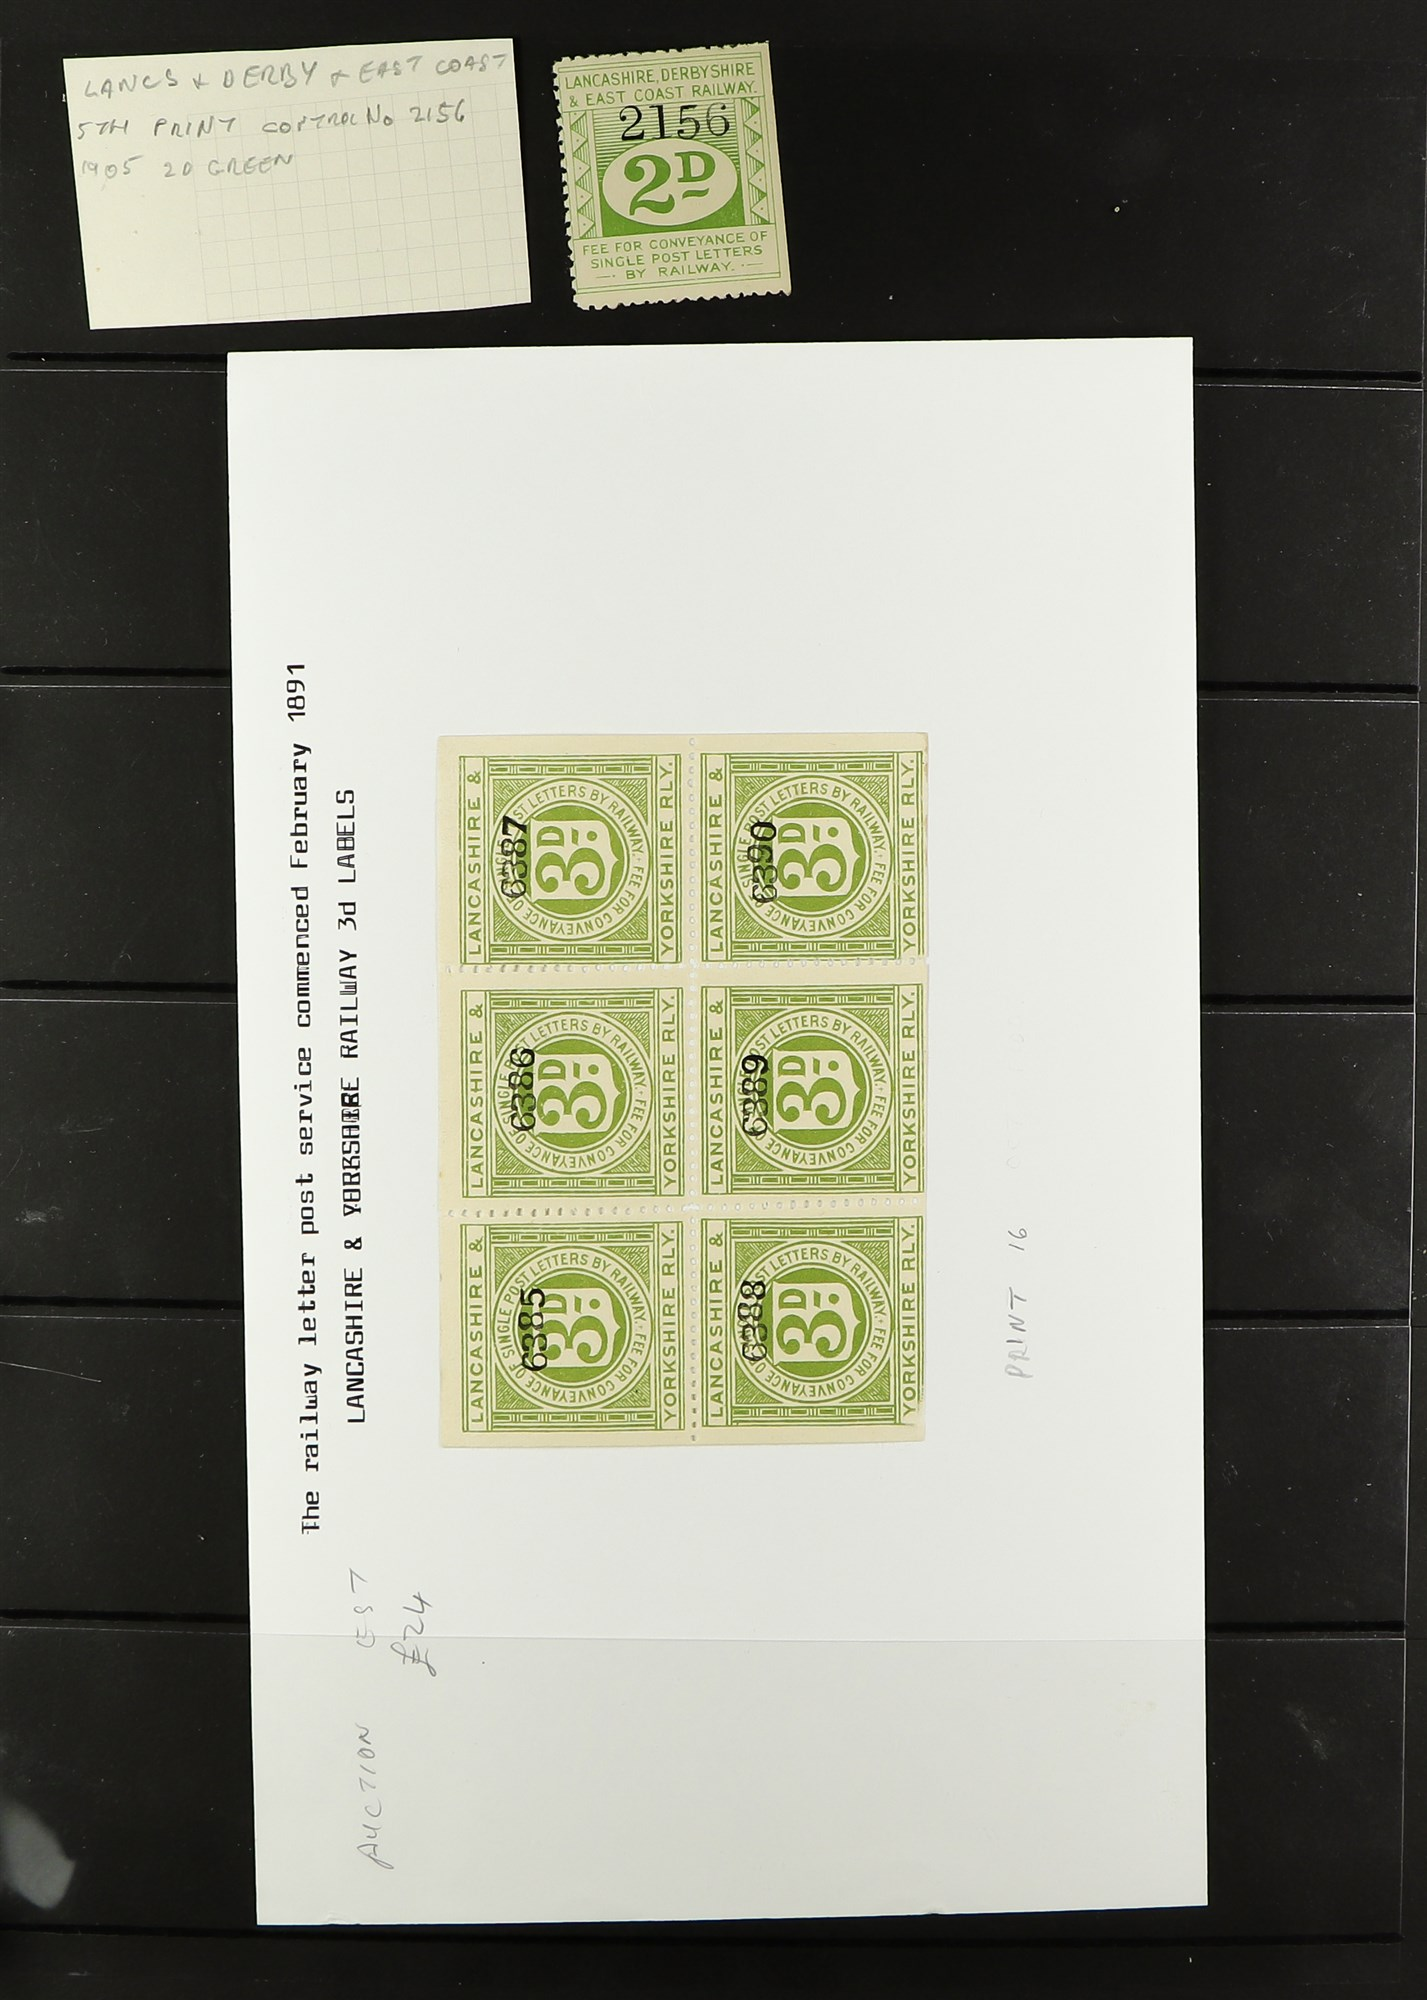 GREAT BRITAIN RAILWAY LETTER AND NEWSPAPER STAMPS 1890's-1940's COLLECTION in two albums, mint and - Image 10 of 24